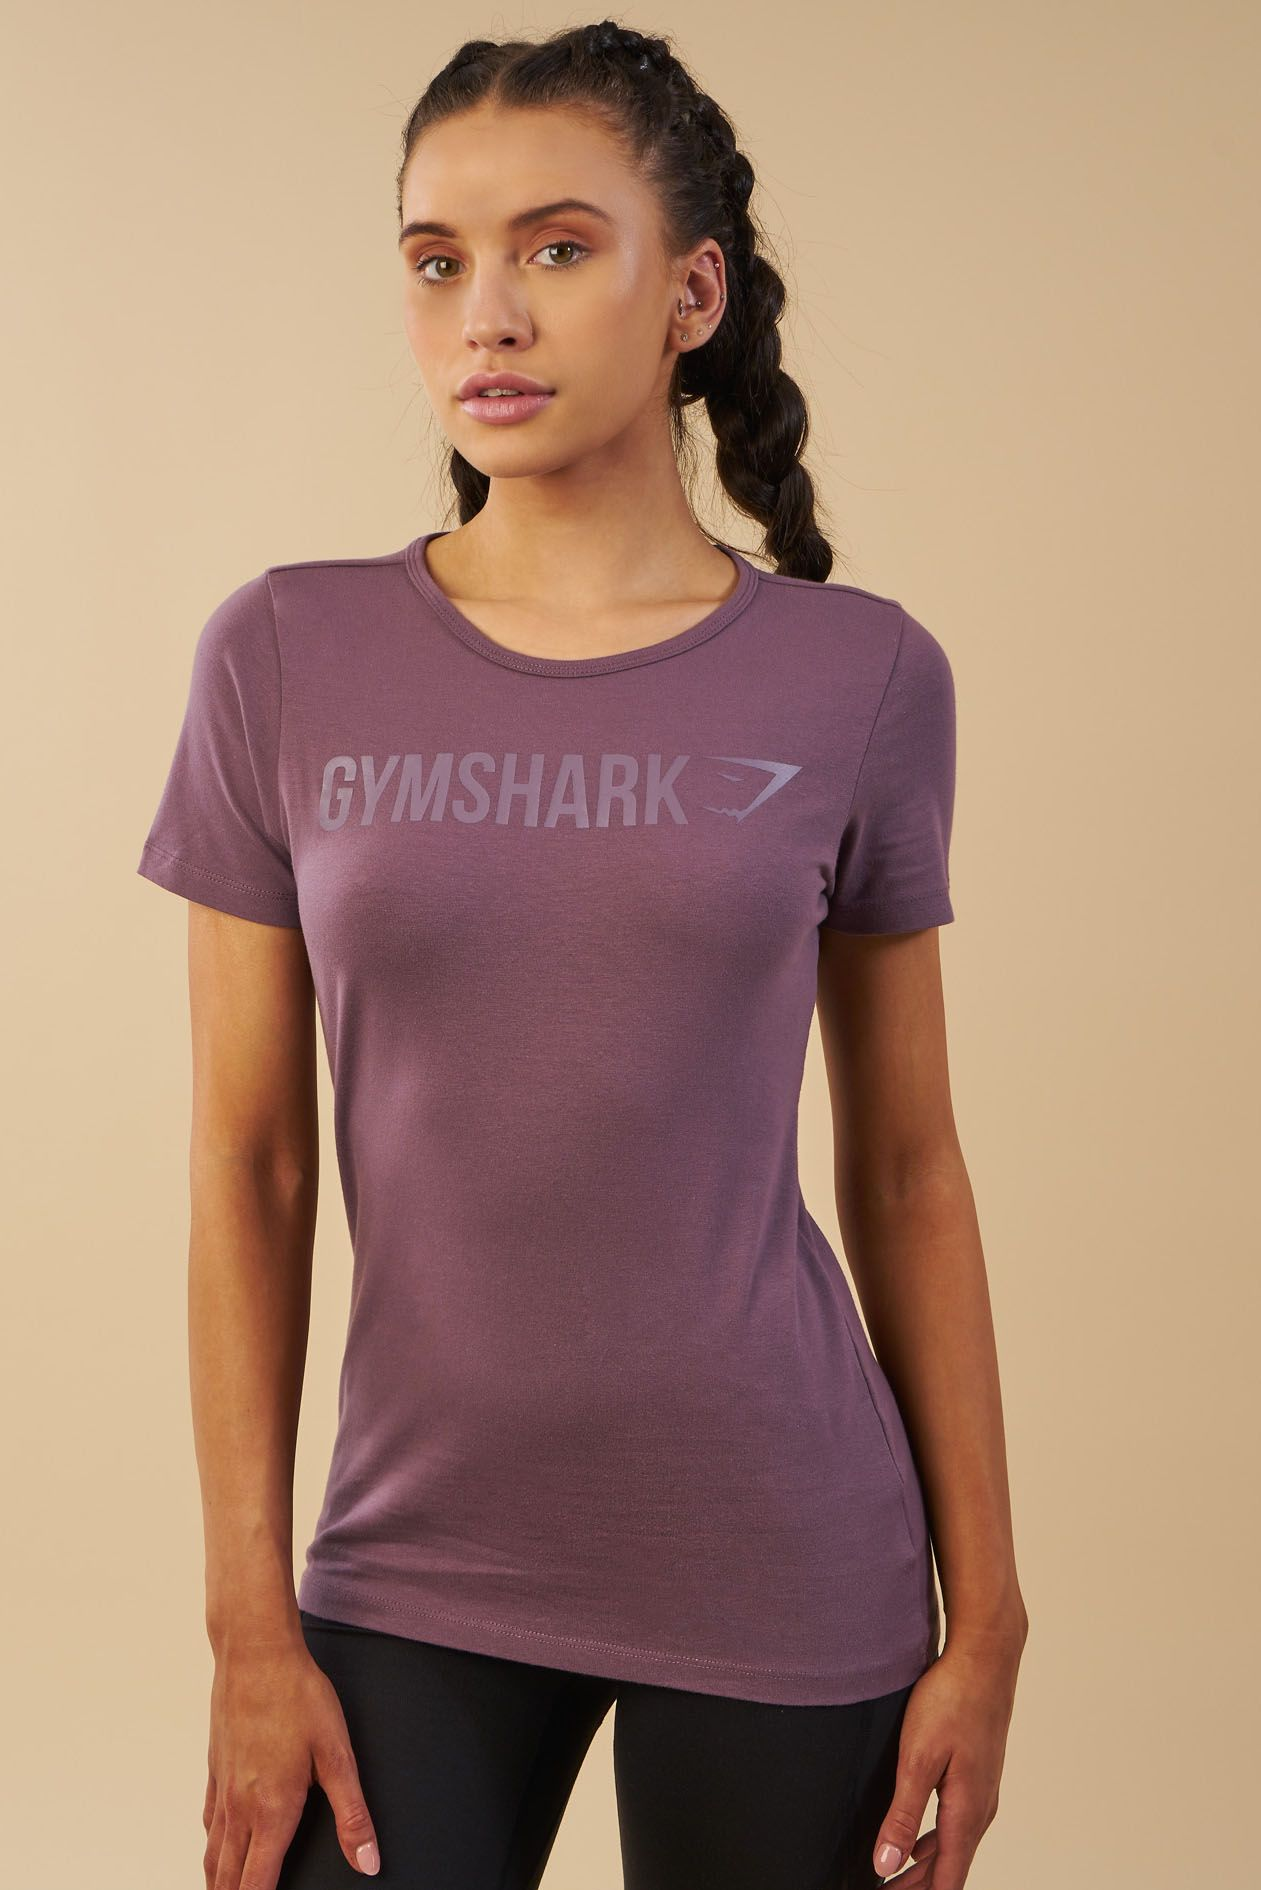 44d839db19e A true Gymshark original. Featuring a centralised printed Gymshark logo